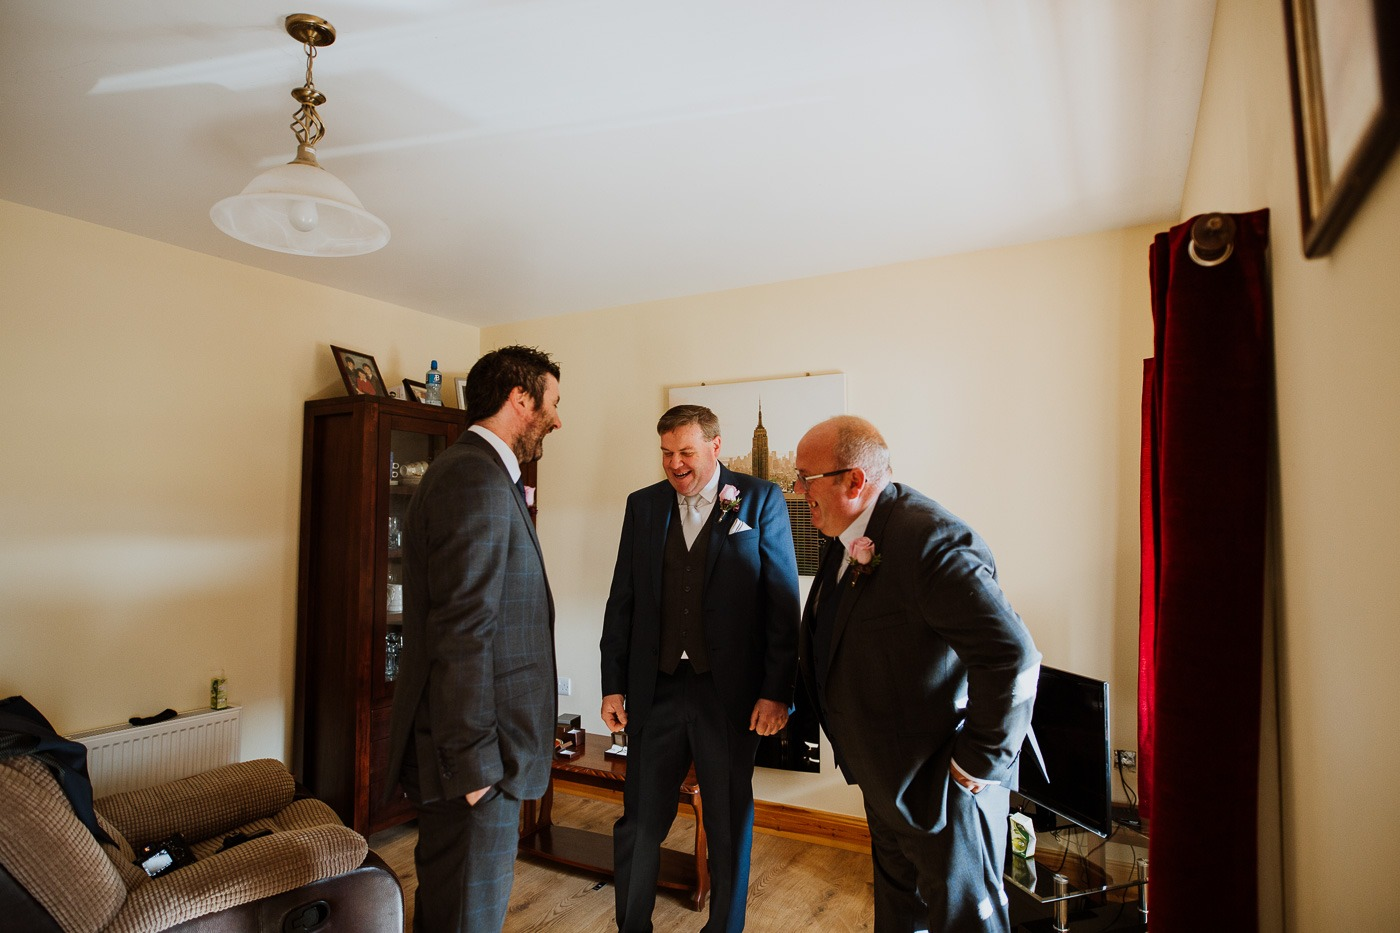 A man in a suit and tie standing in a room